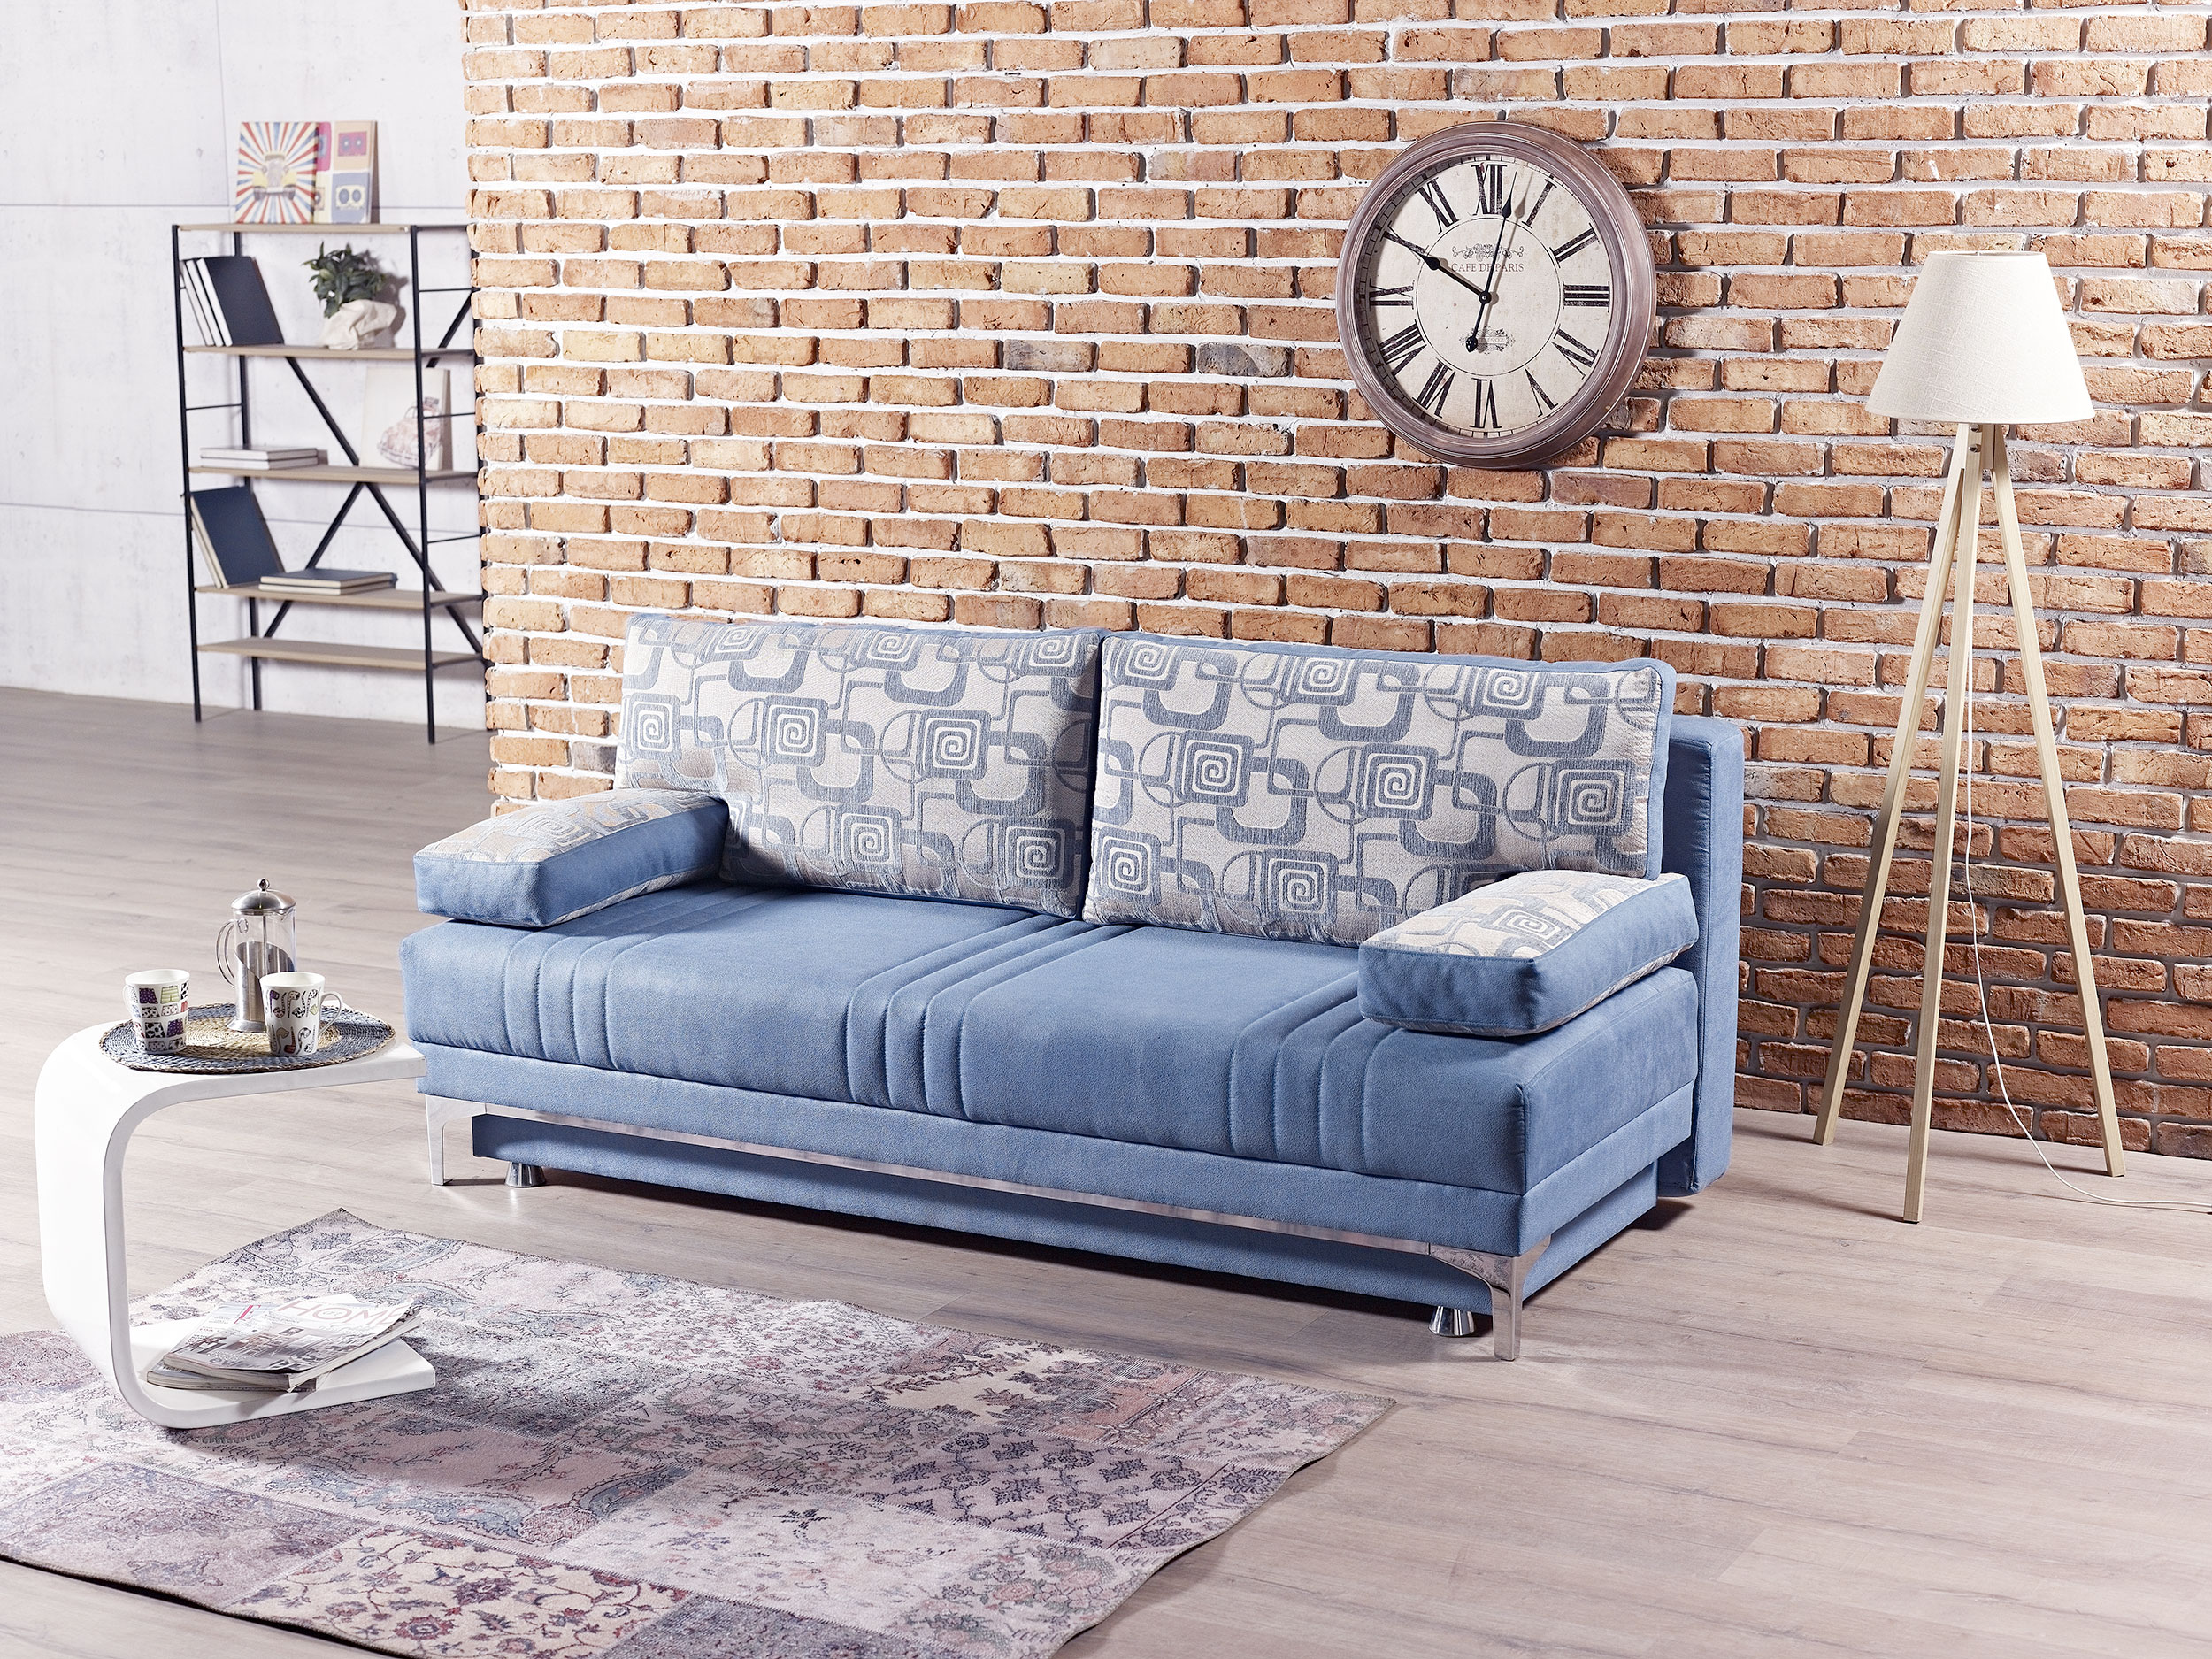 Europa Vintage Blue Queen Size Sofa Bed by Mobista